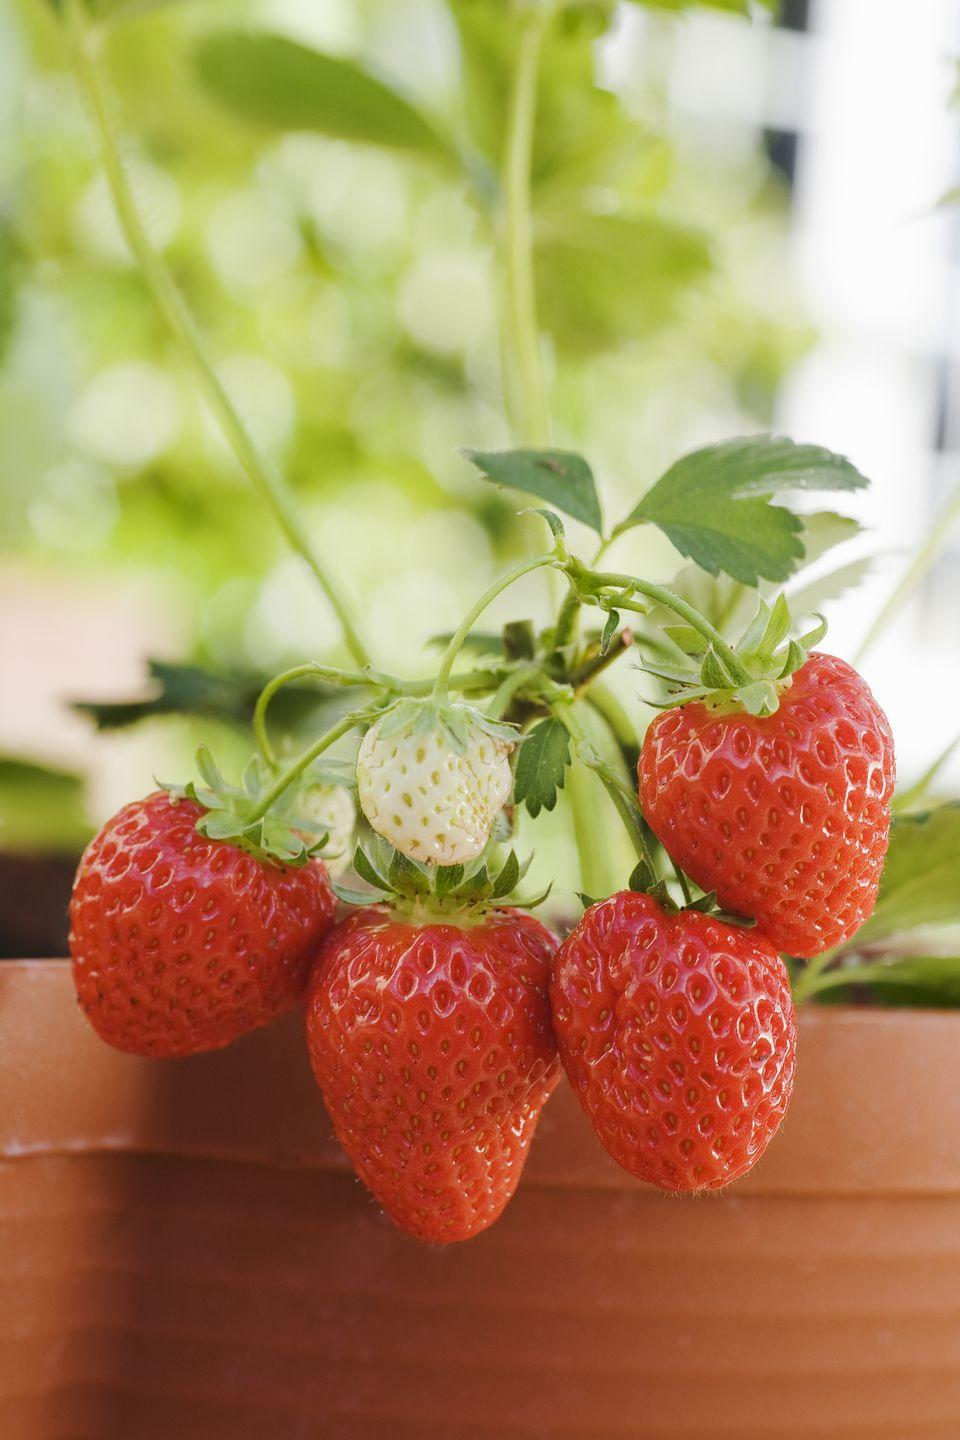 "<p>Why not add perennial edibles to your patio garden? New ever-bearing strawberry varieties sport little berries that are almost too pretty to eat! Keeping them in tall pots also prevents your friends, the chipmunks and other rodents, from gnawing on them. Strawberries need full sun.</p><p><a class=""link rapid-noclick-resp"" href=""https://www.provenwinners.com/plants/fragaria/berried-treasure-red-strawberry-fragaria-ananassa"" rel=""nofollow noopener"" target=""_blank"" data-ylk=""slk:SHOP STRAWBERRIES"">SHOP STRAWBERRIES</a></p>"